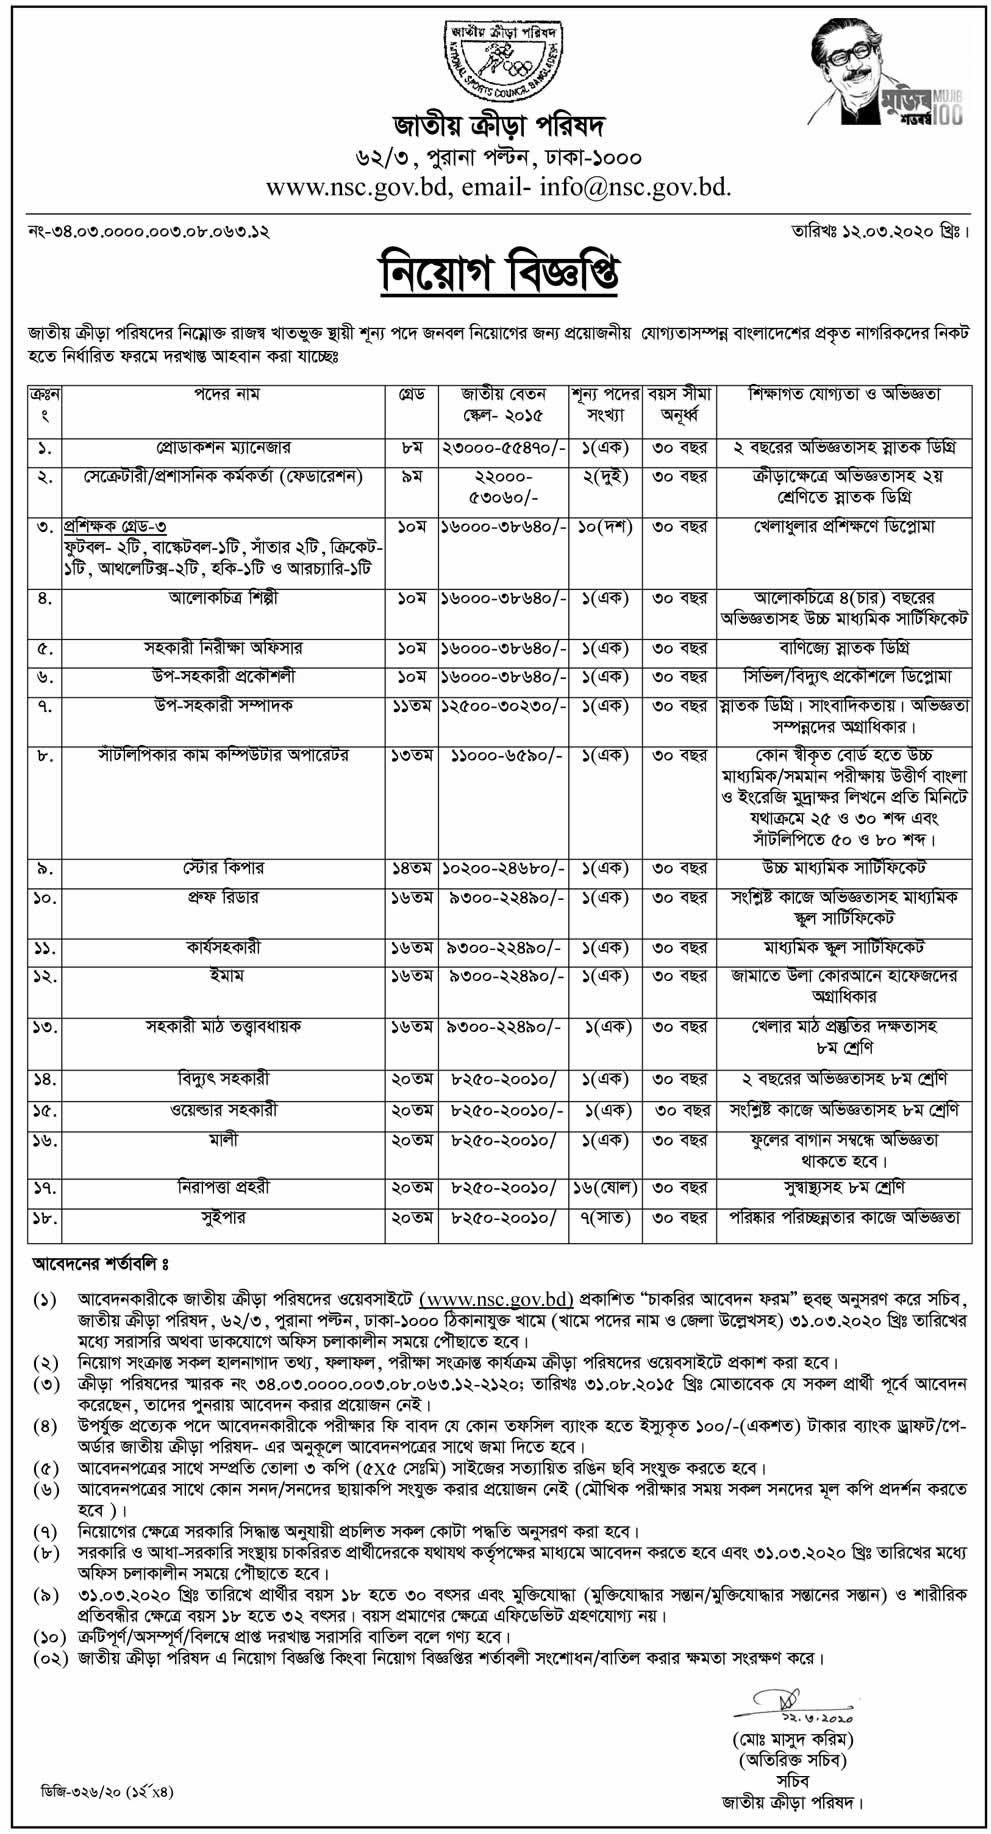 Ministry Of Youth and Sports Job Circular 2020